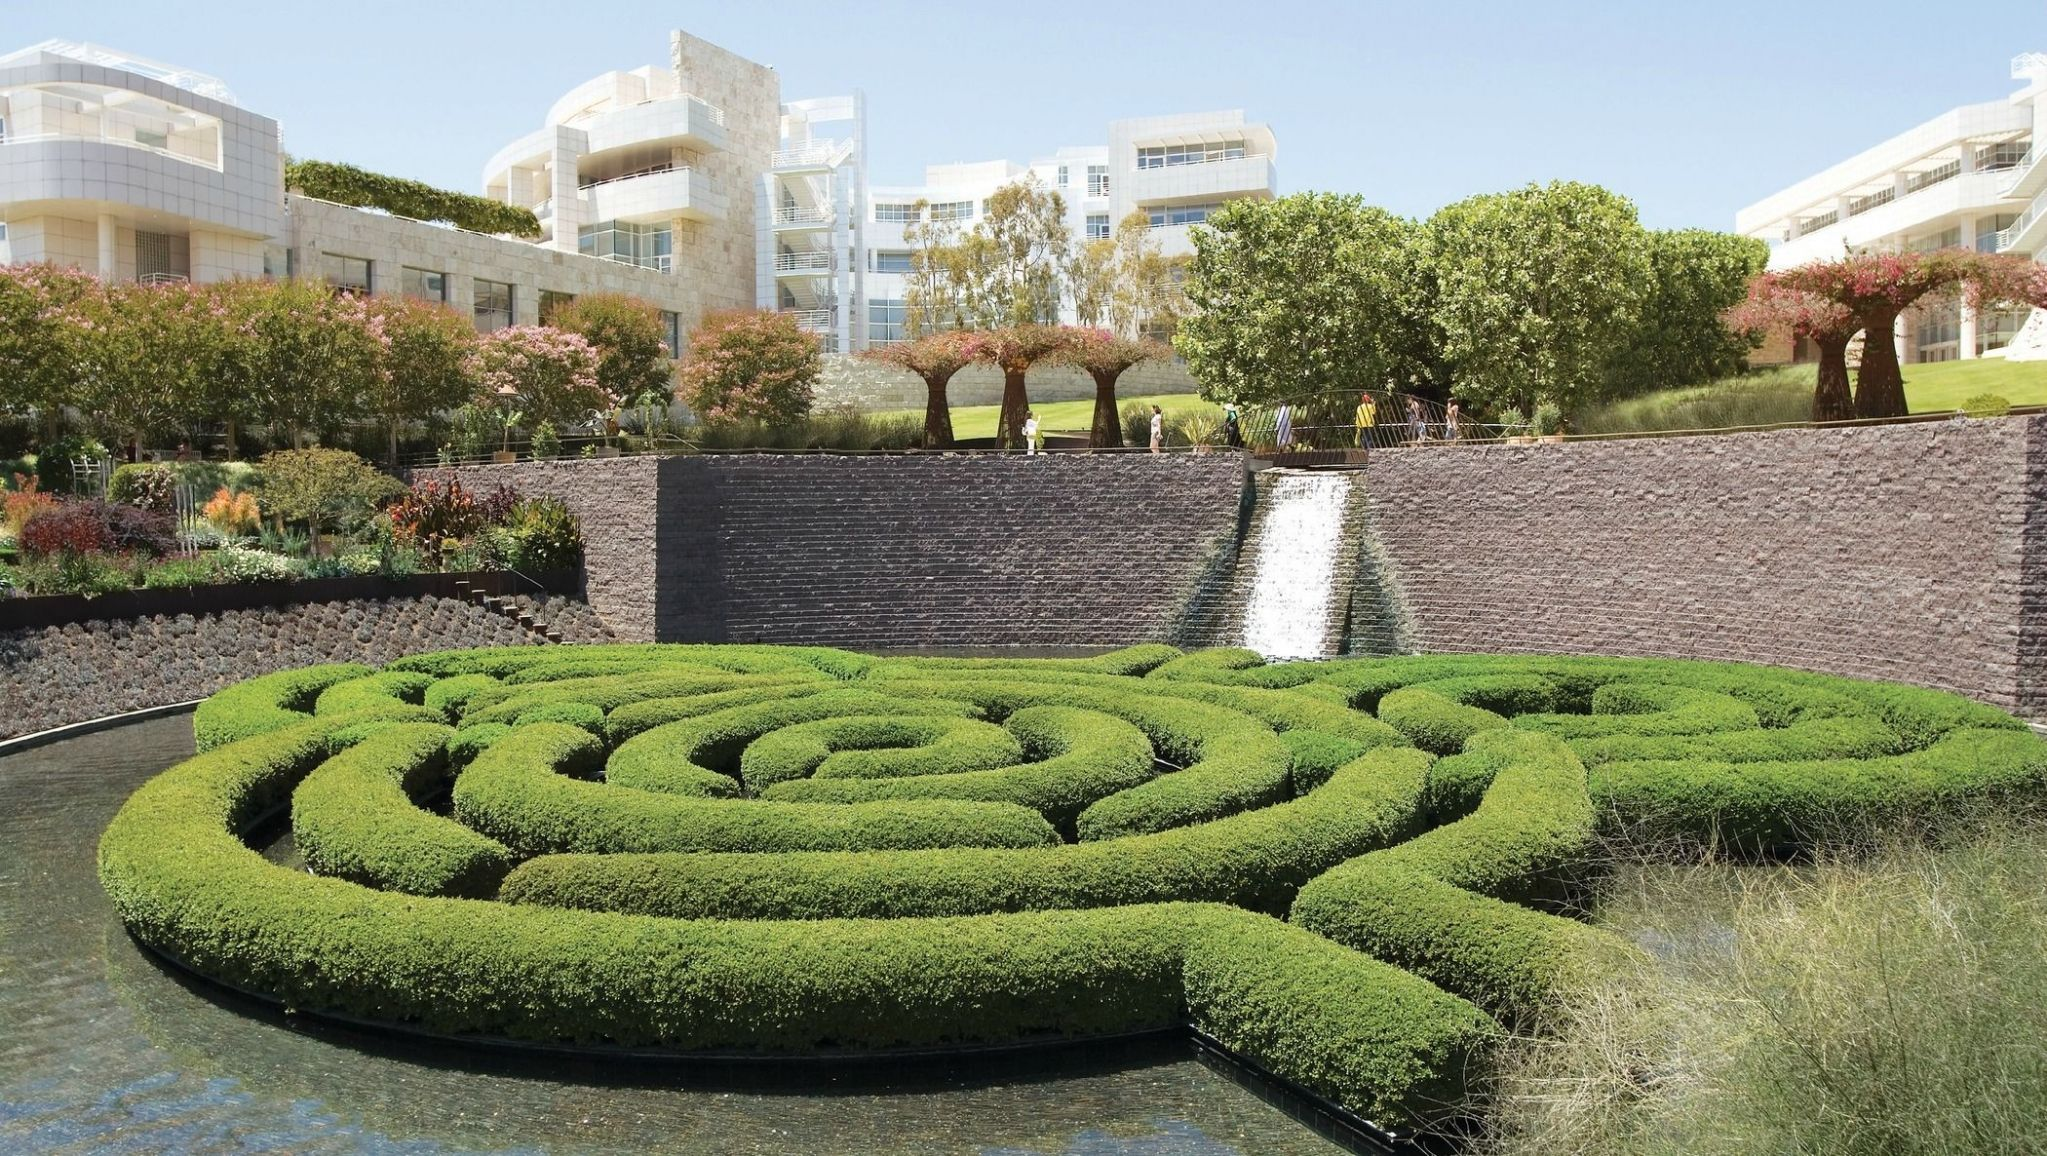 Things to do in Southern California - J Paul Getty Museum